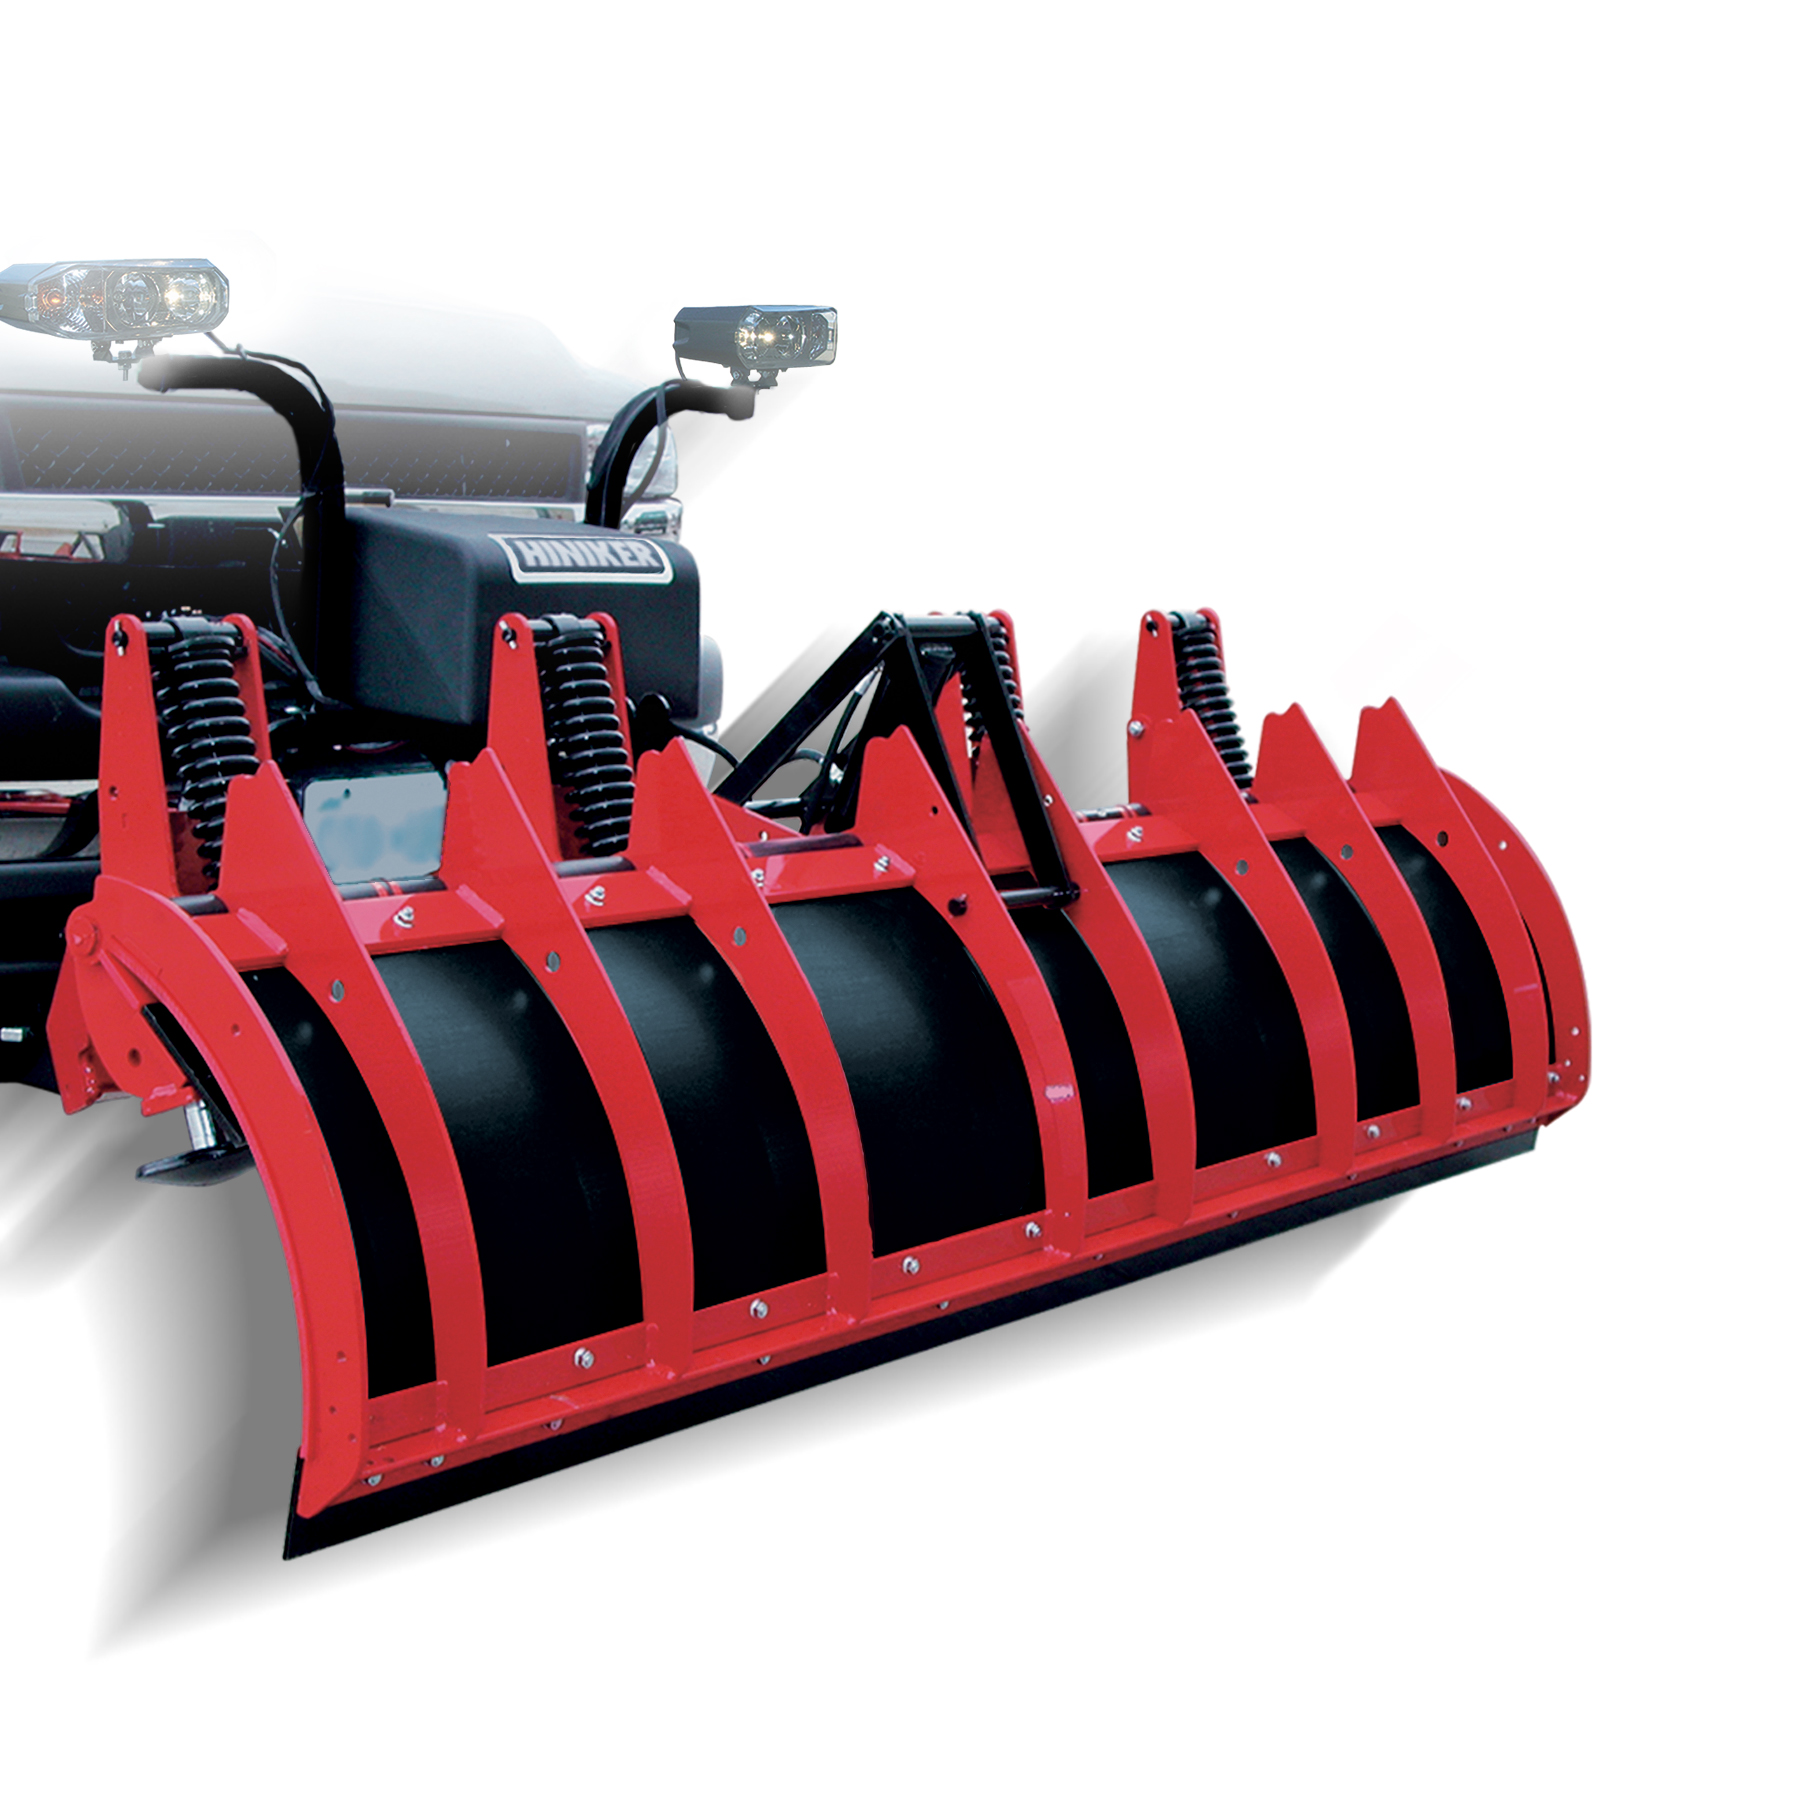 SOLD OUT - Hiniker 9 C-Plow Poly - Compression Spring Trip (QH2)  - Available for Special Order. Call for Price.